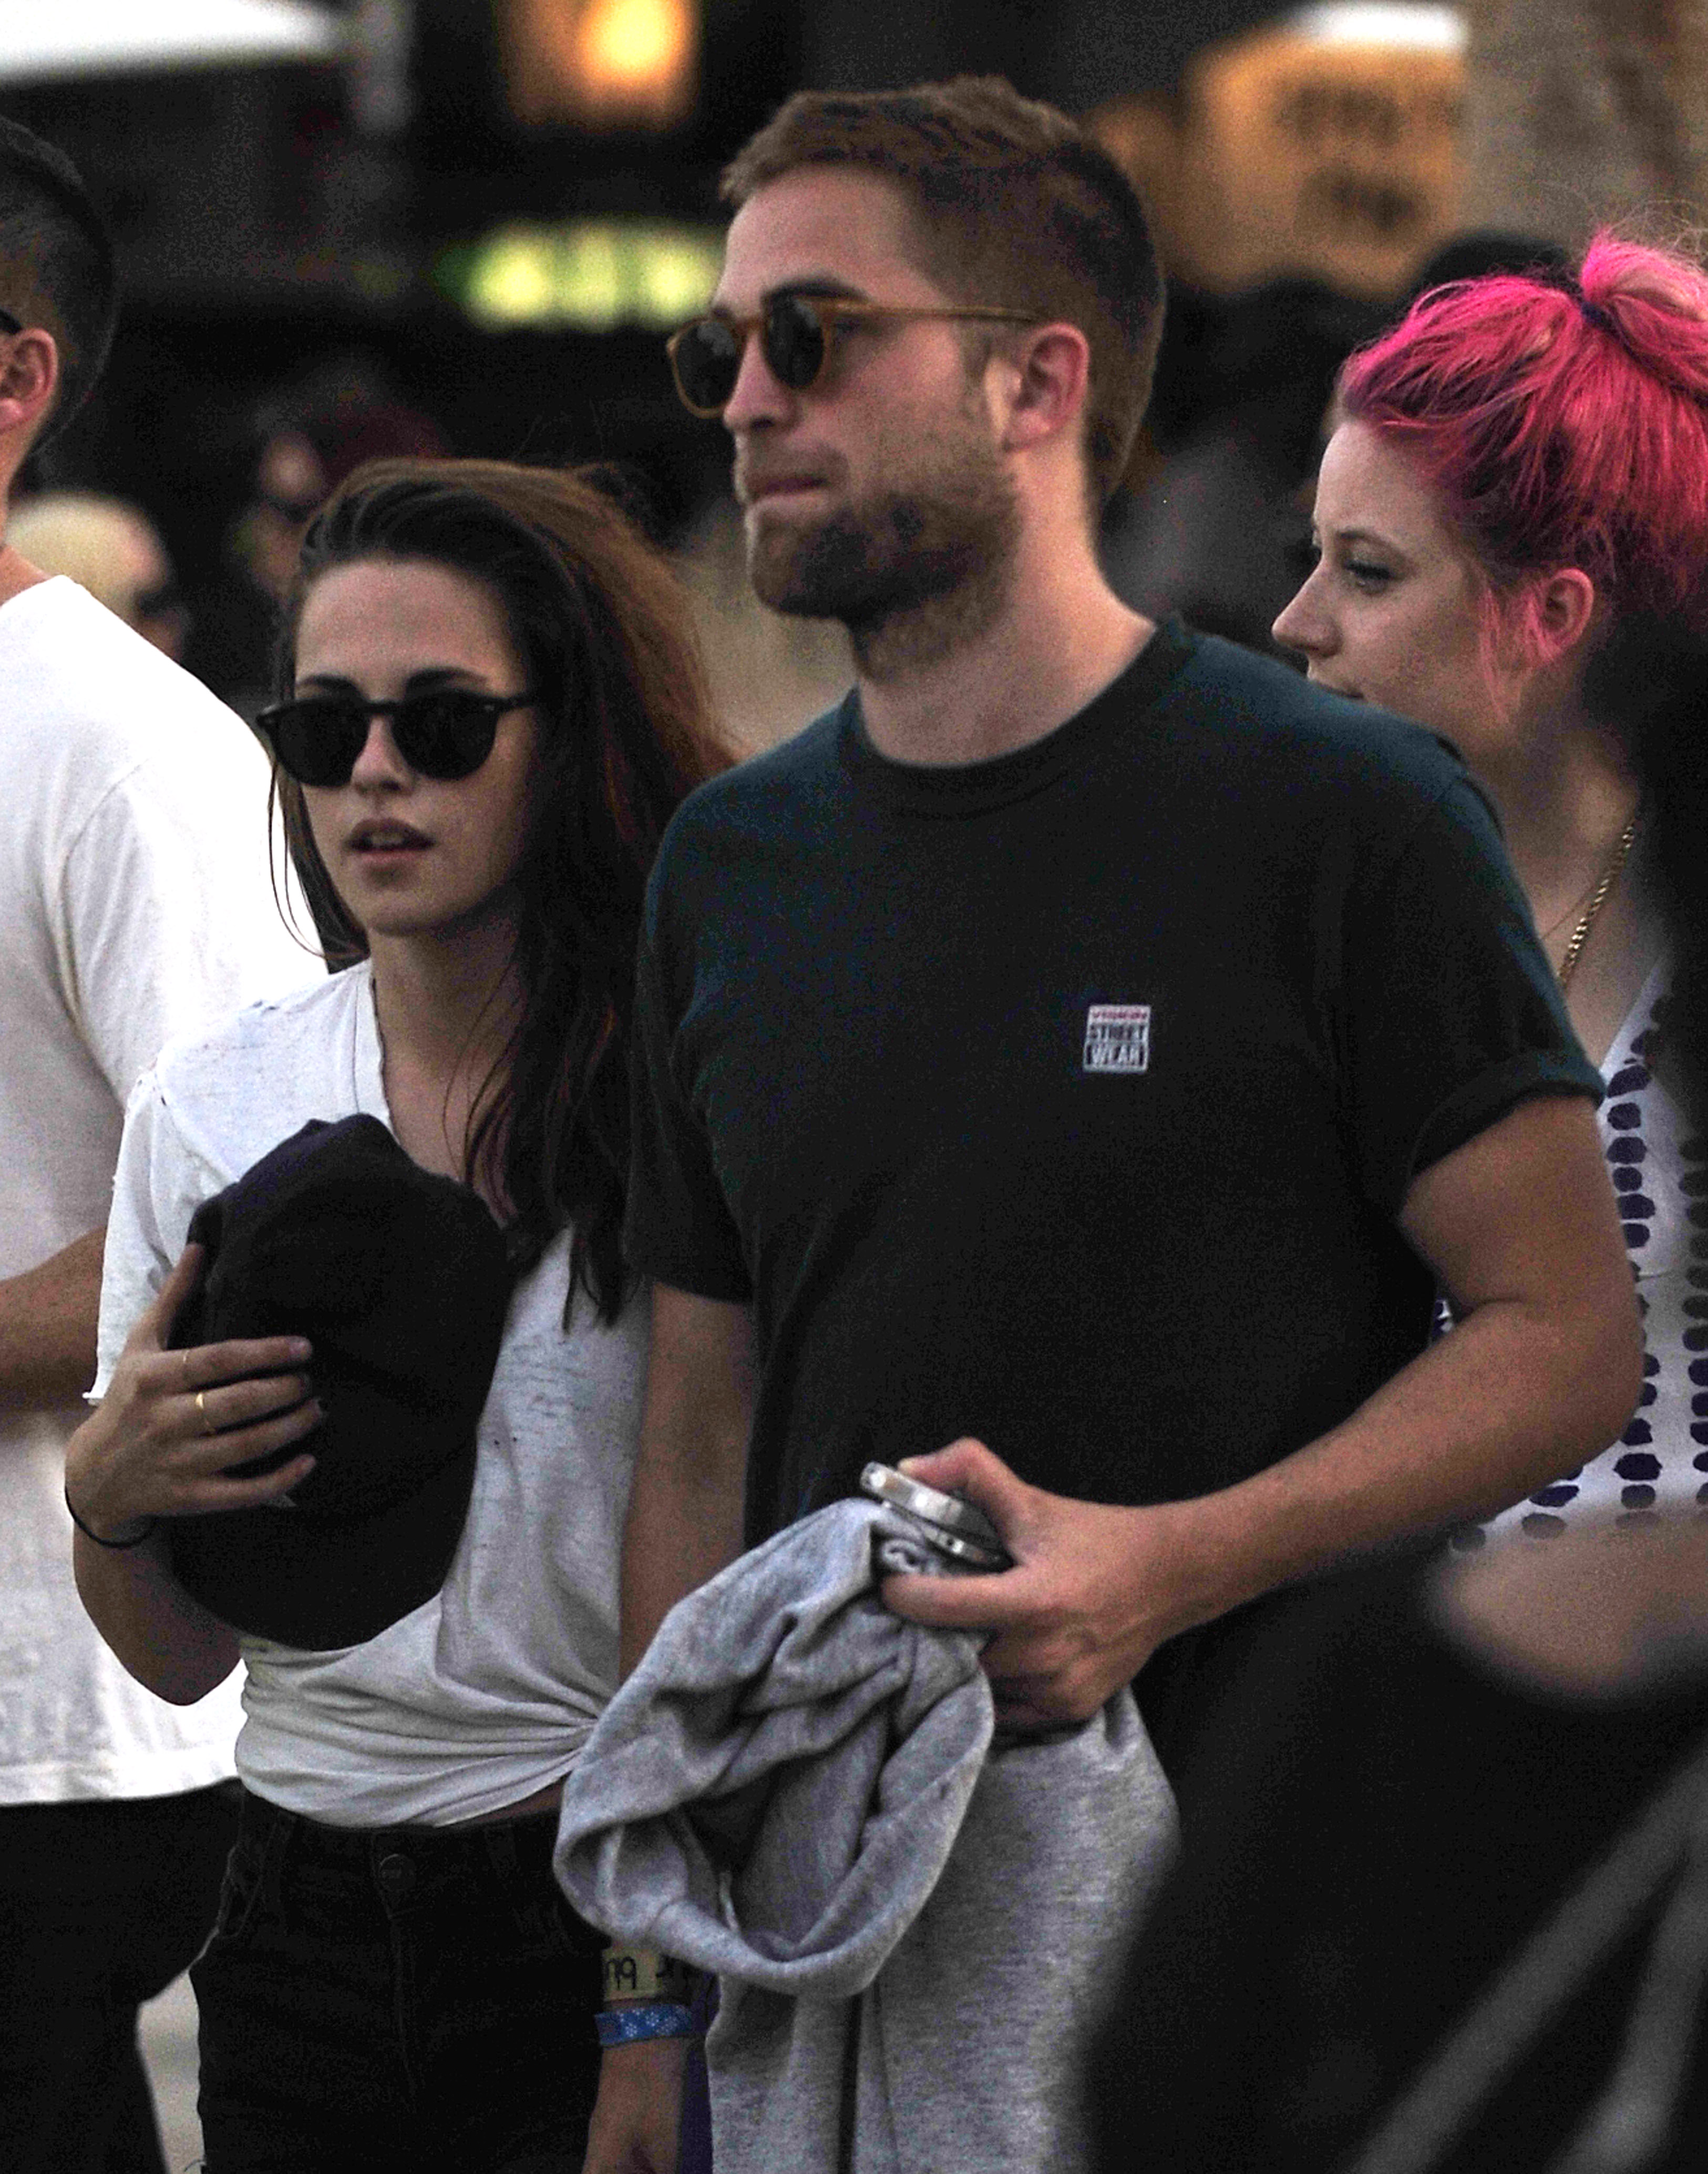 Robert Pattinson & Kristen Stewart Rob and Kristen at Coachella (2013)